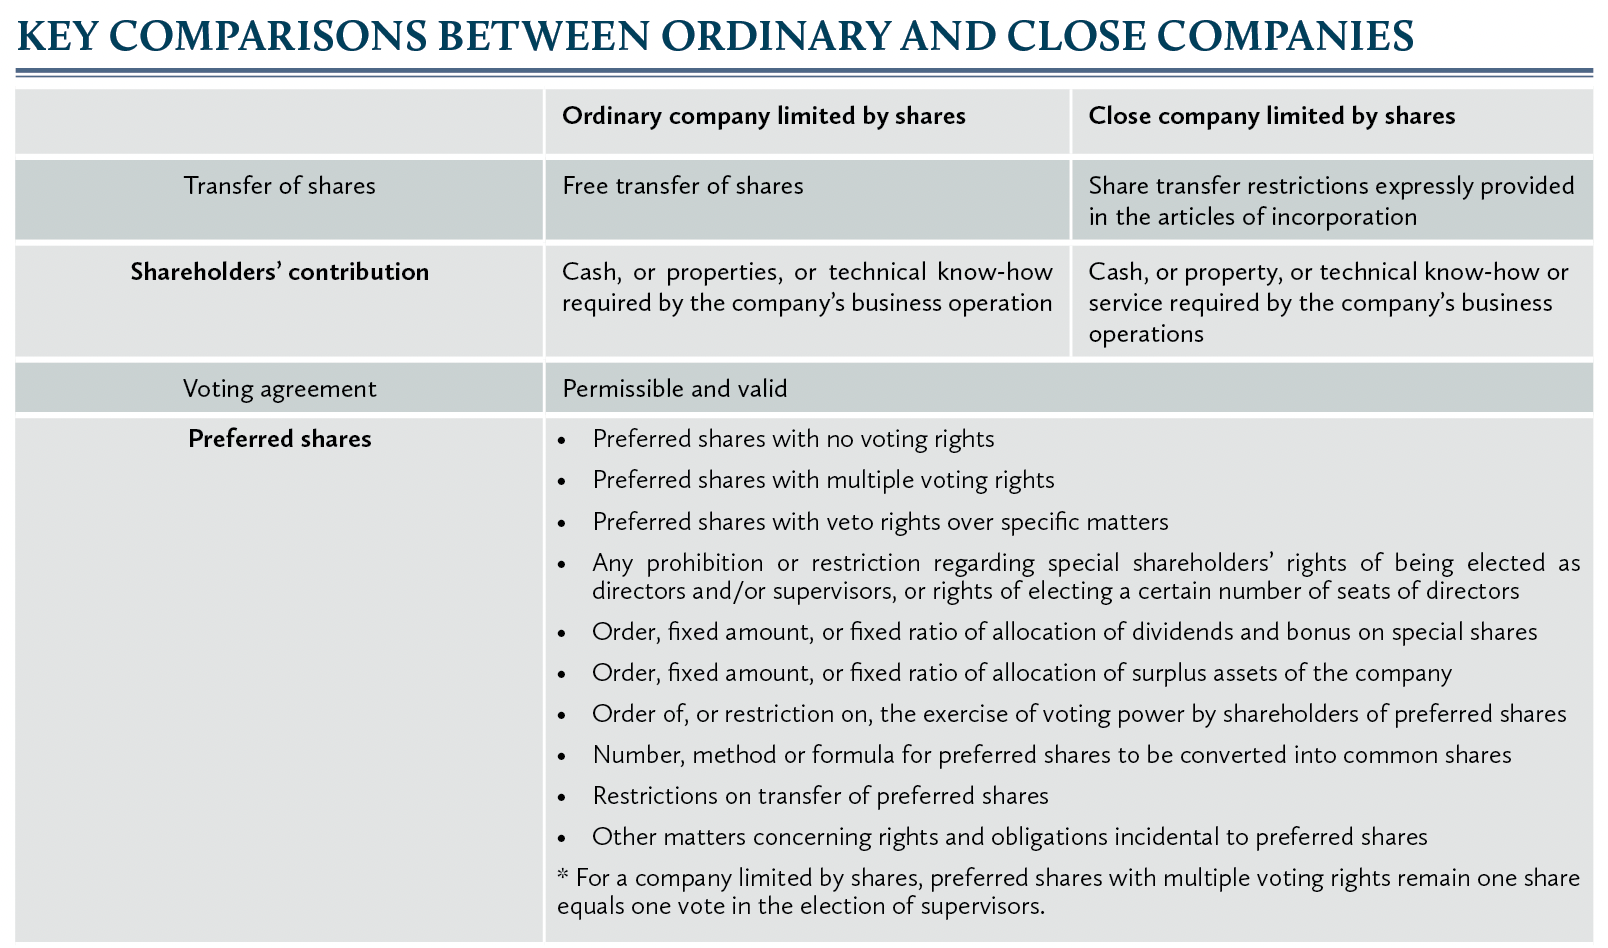 Key comparisons between ordinary and close companies